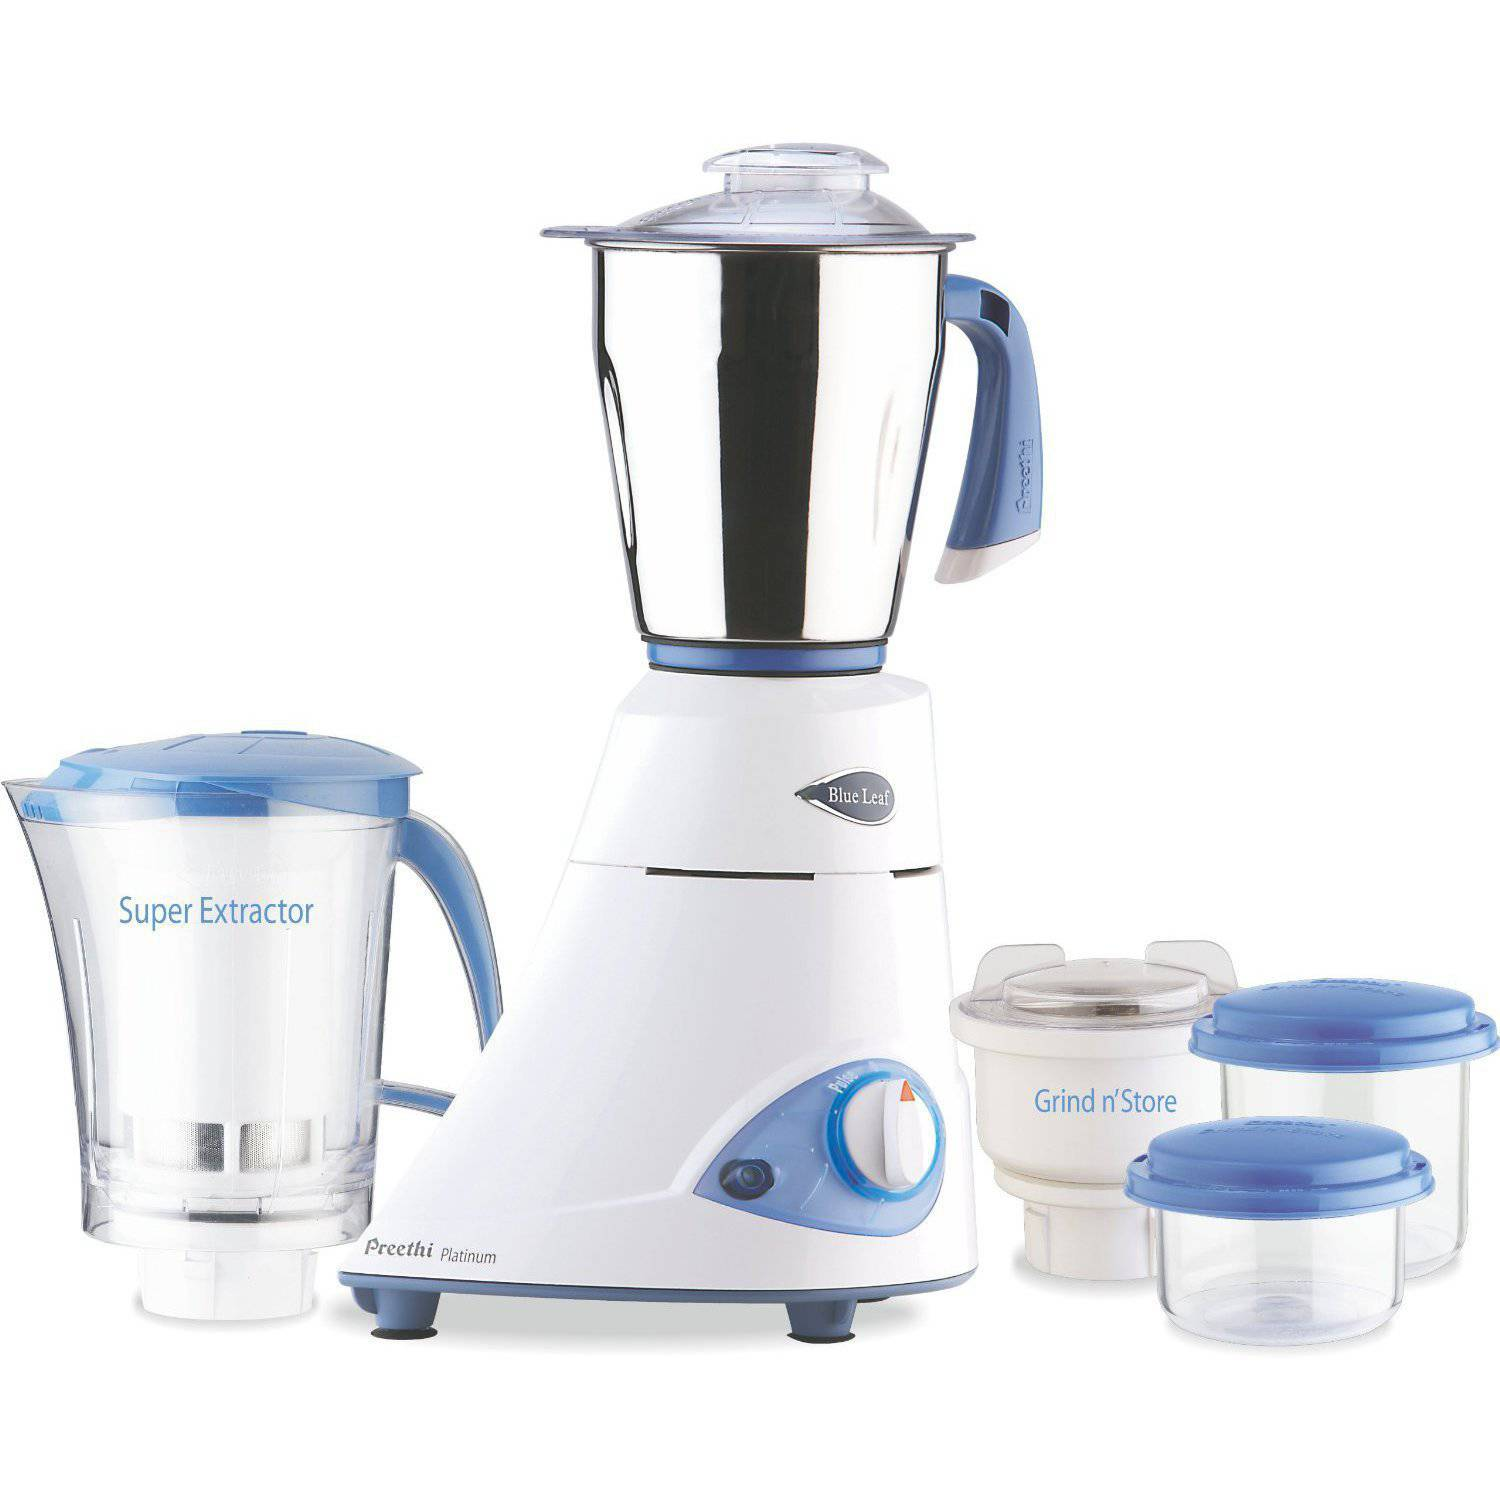 Preethi Blue Leaf Platinum Mixer Grinder, 110-Volts